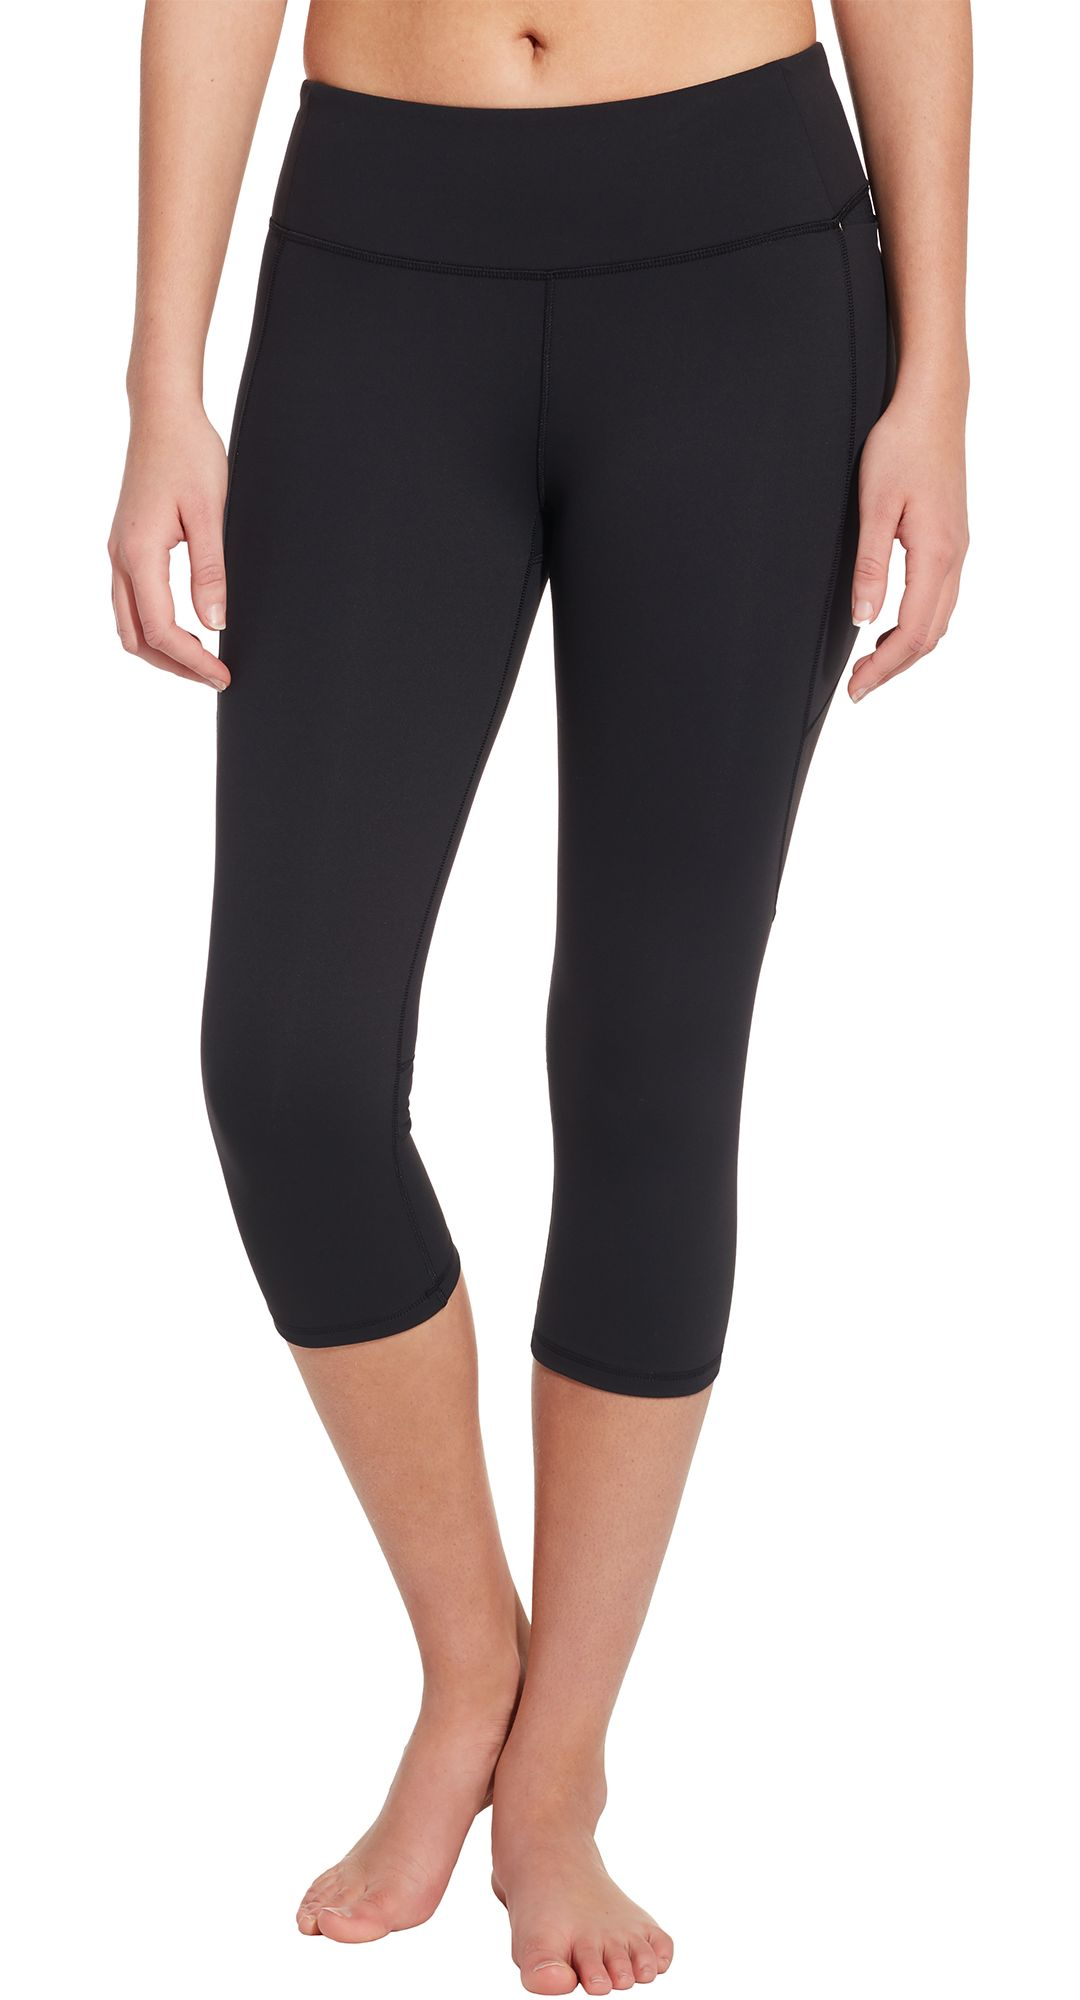 7fec06b712bc4 CALIA by Carrie Underwood Women's Energize Crop Tights | DICK'S ...